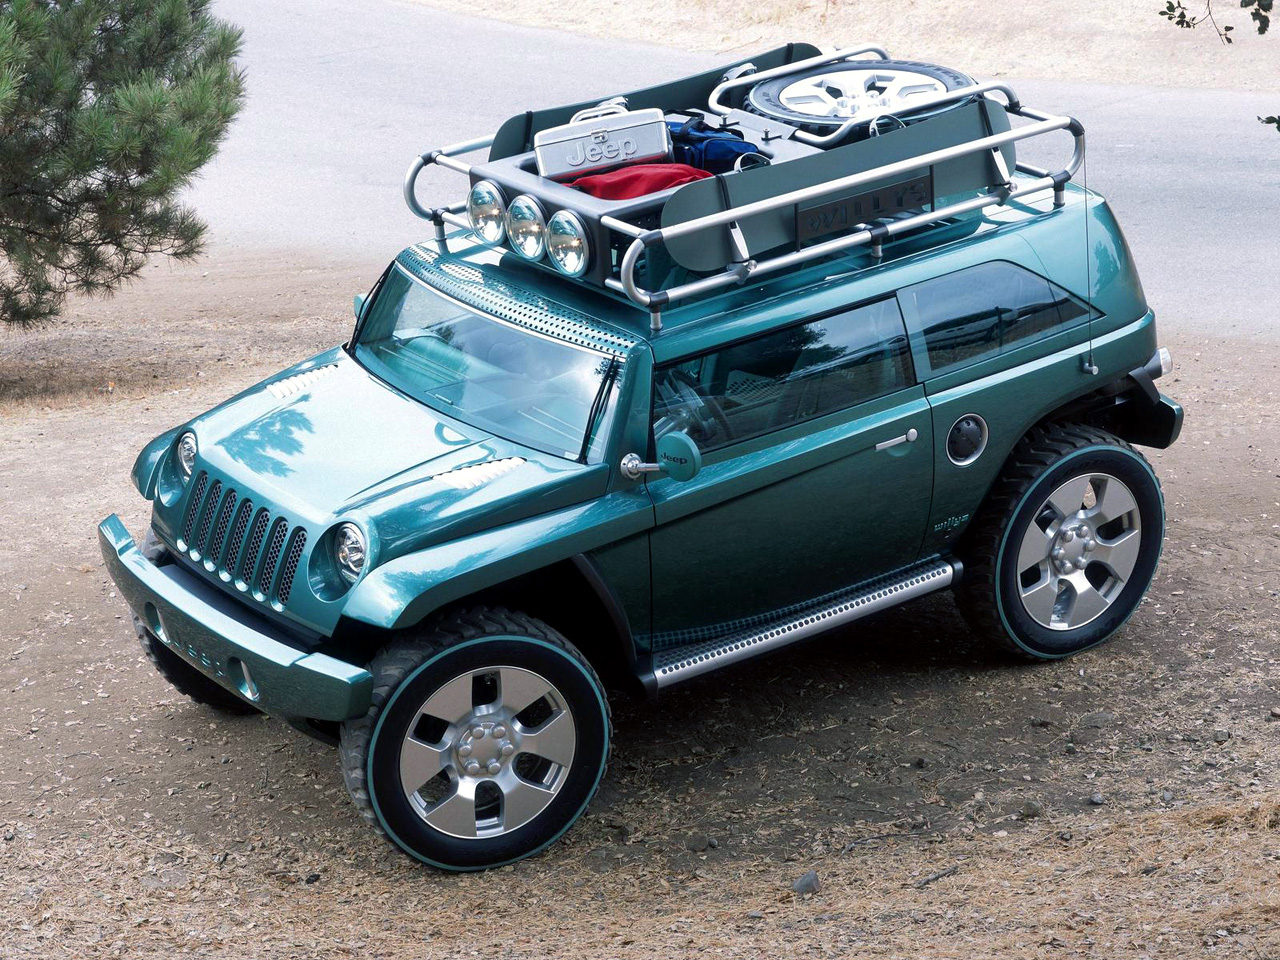 2001 Jeep Willys #24